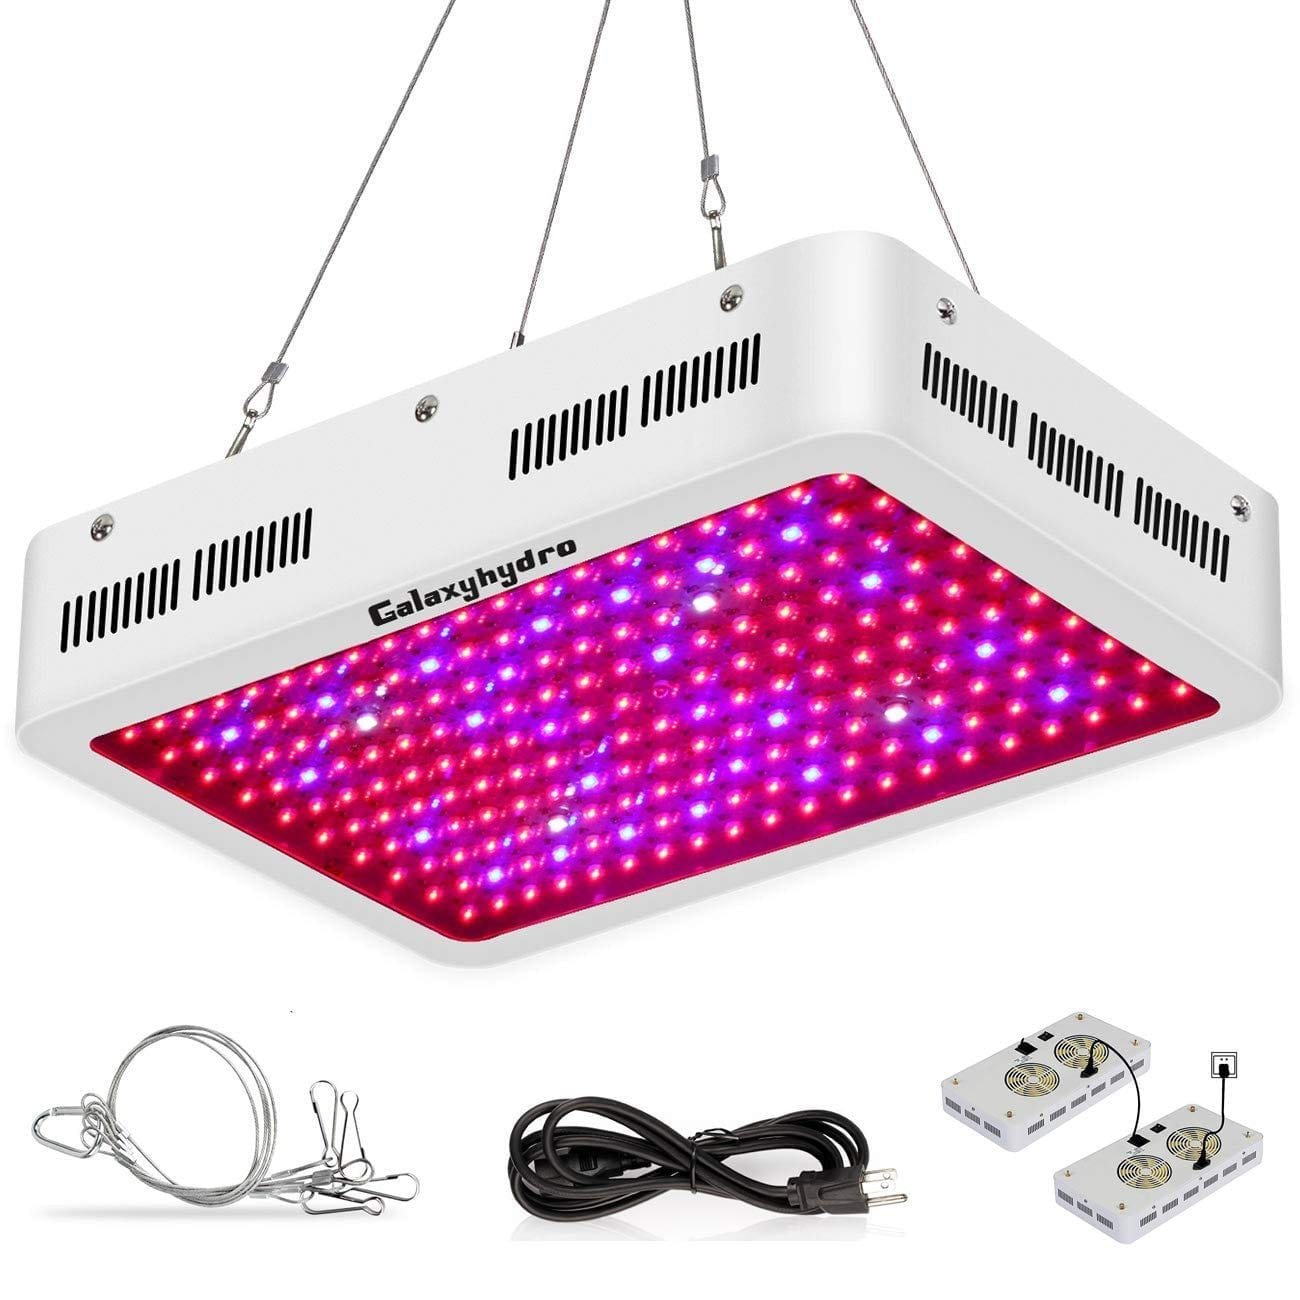 Roleadro Galaxyhydro 2000w Led Grow Light Review Growyour420